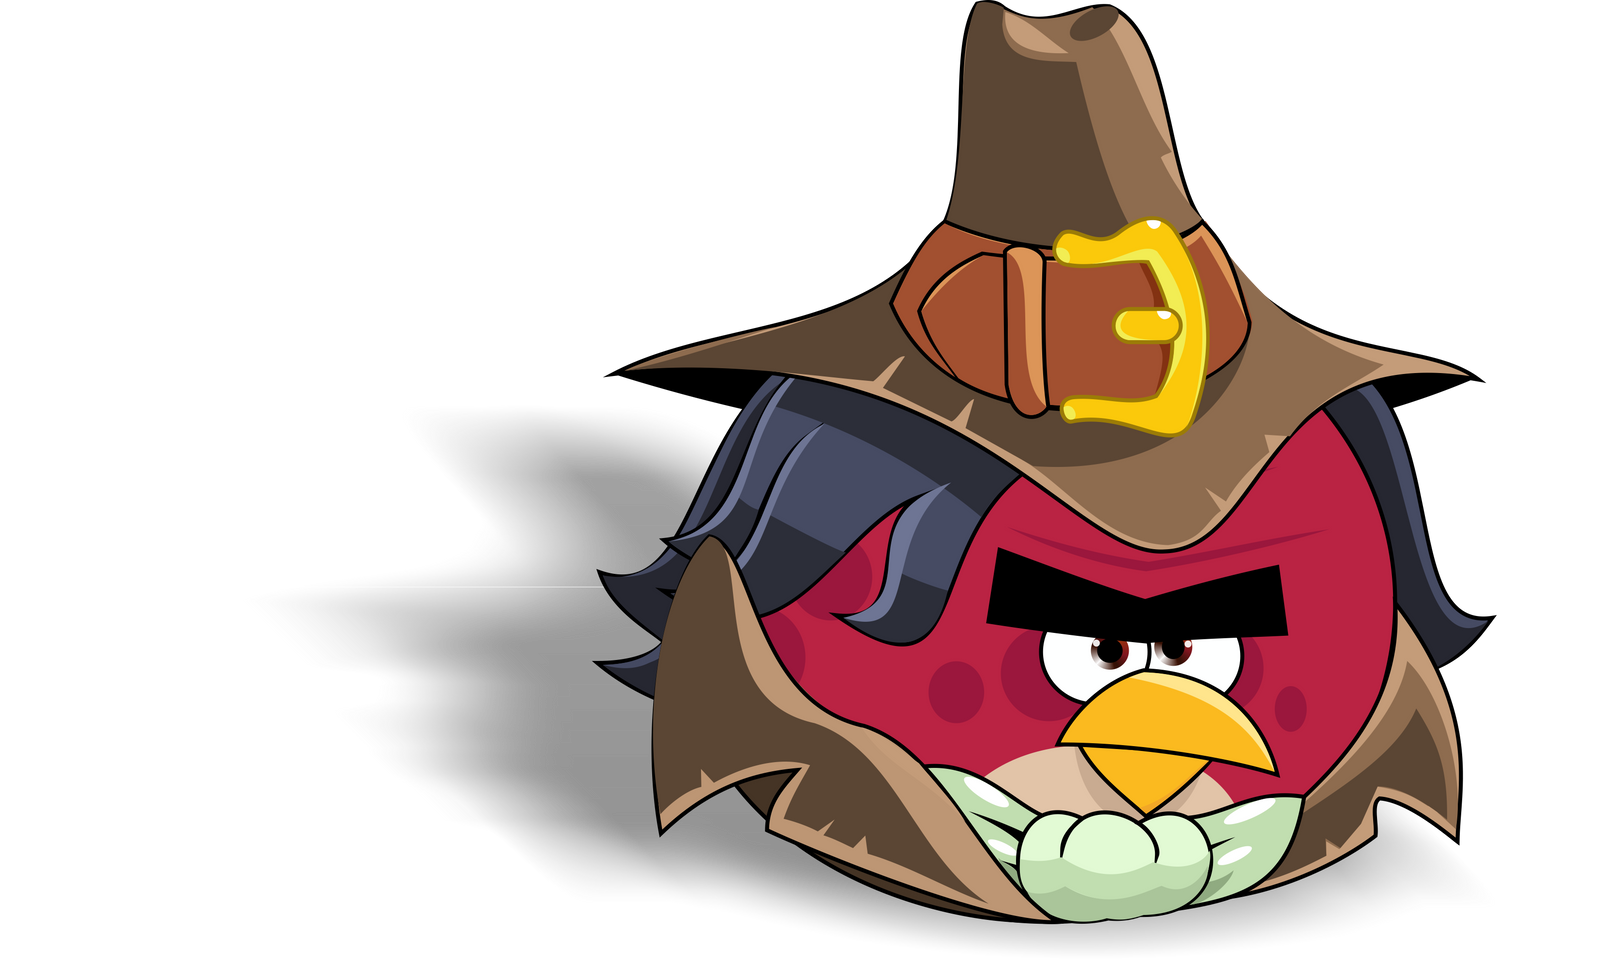 Terence Angry Angry Birds Terence The Hunter